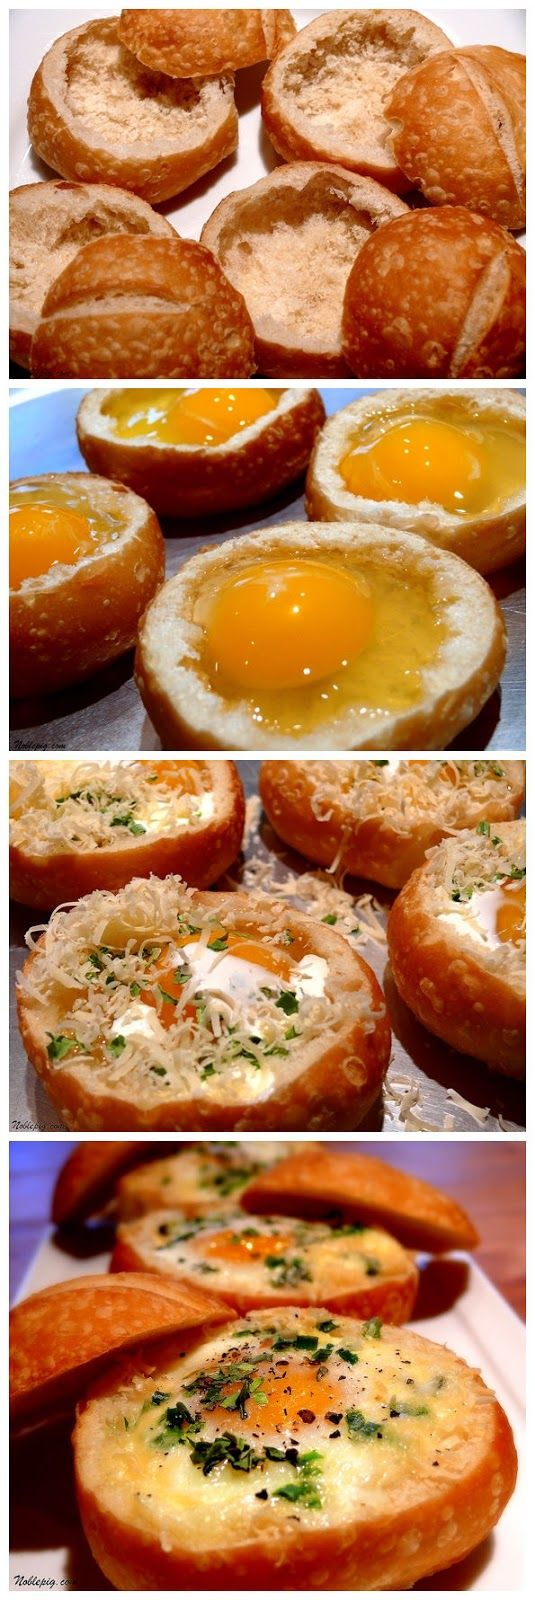 Start Recipes: Baked Eggs in Bread Bowls